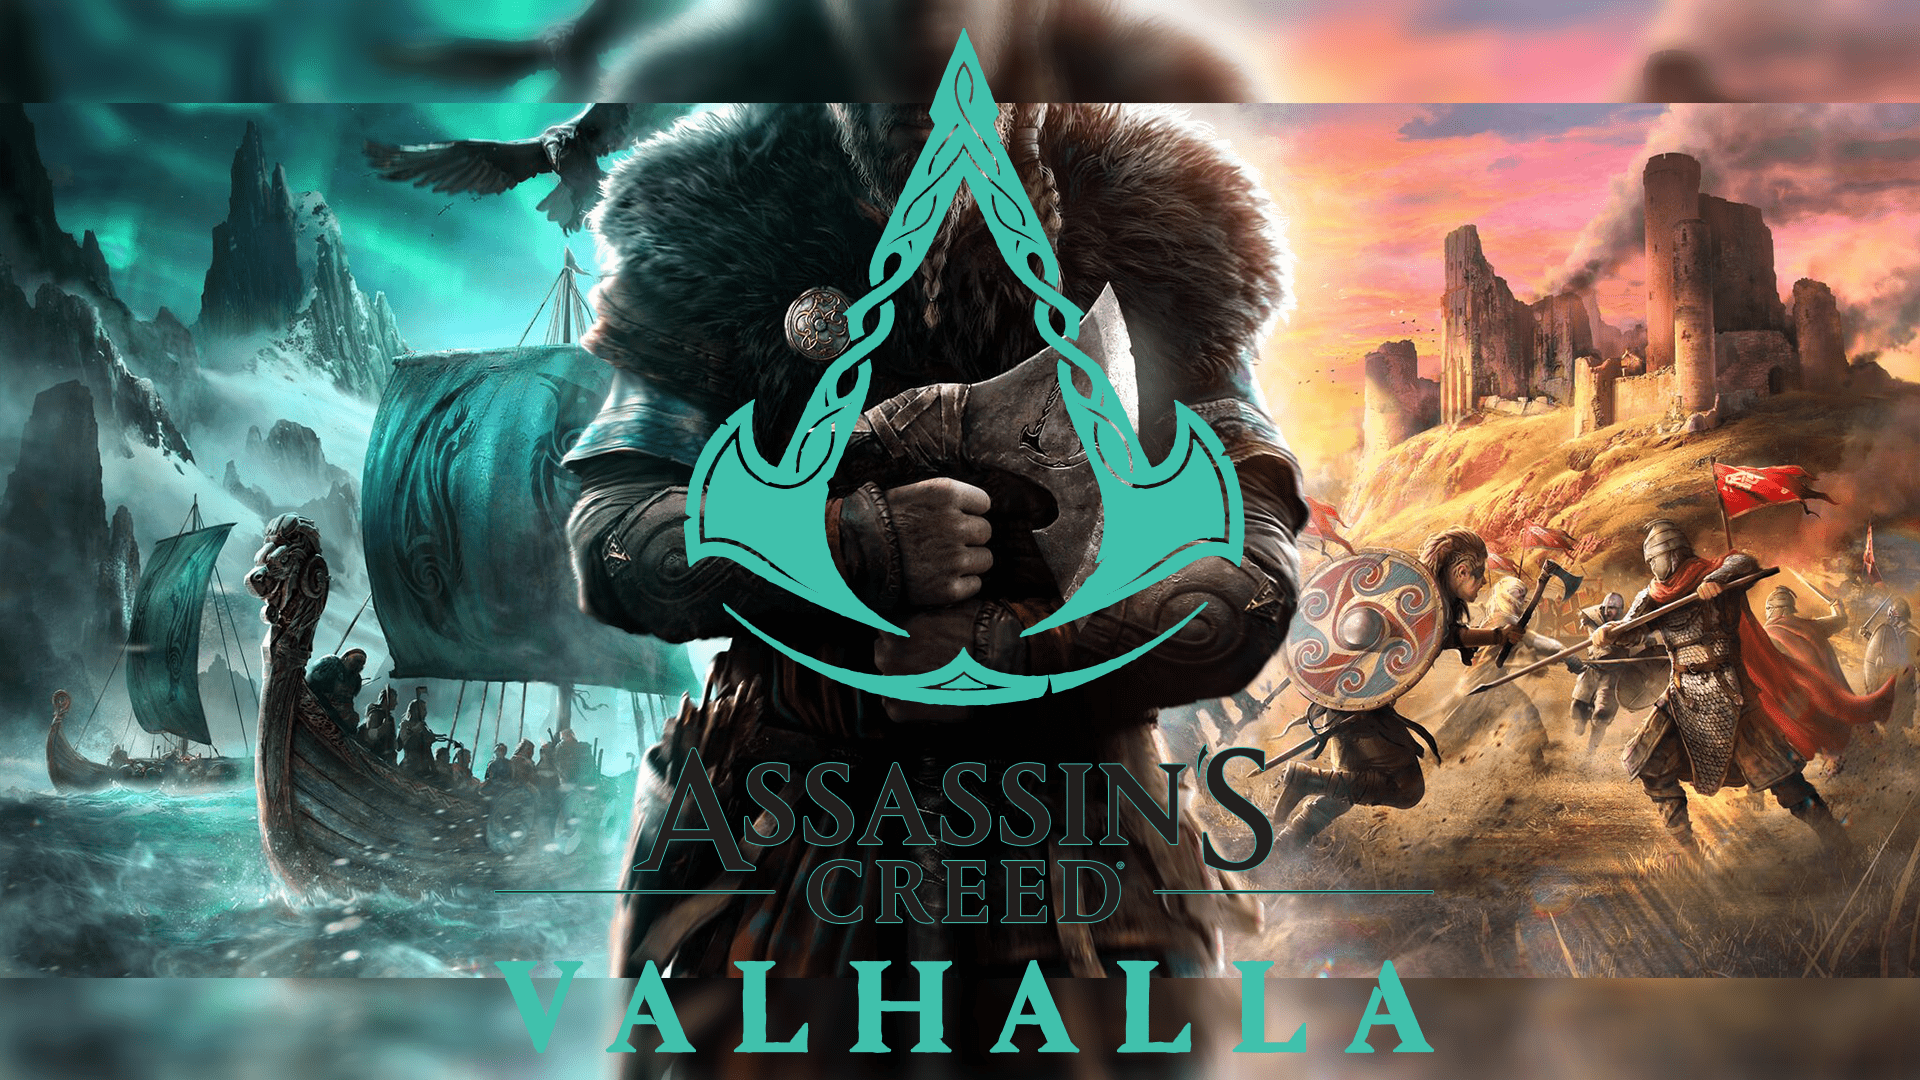 Check hier om 17:00 de Assassin's Creed Valhalla trailer